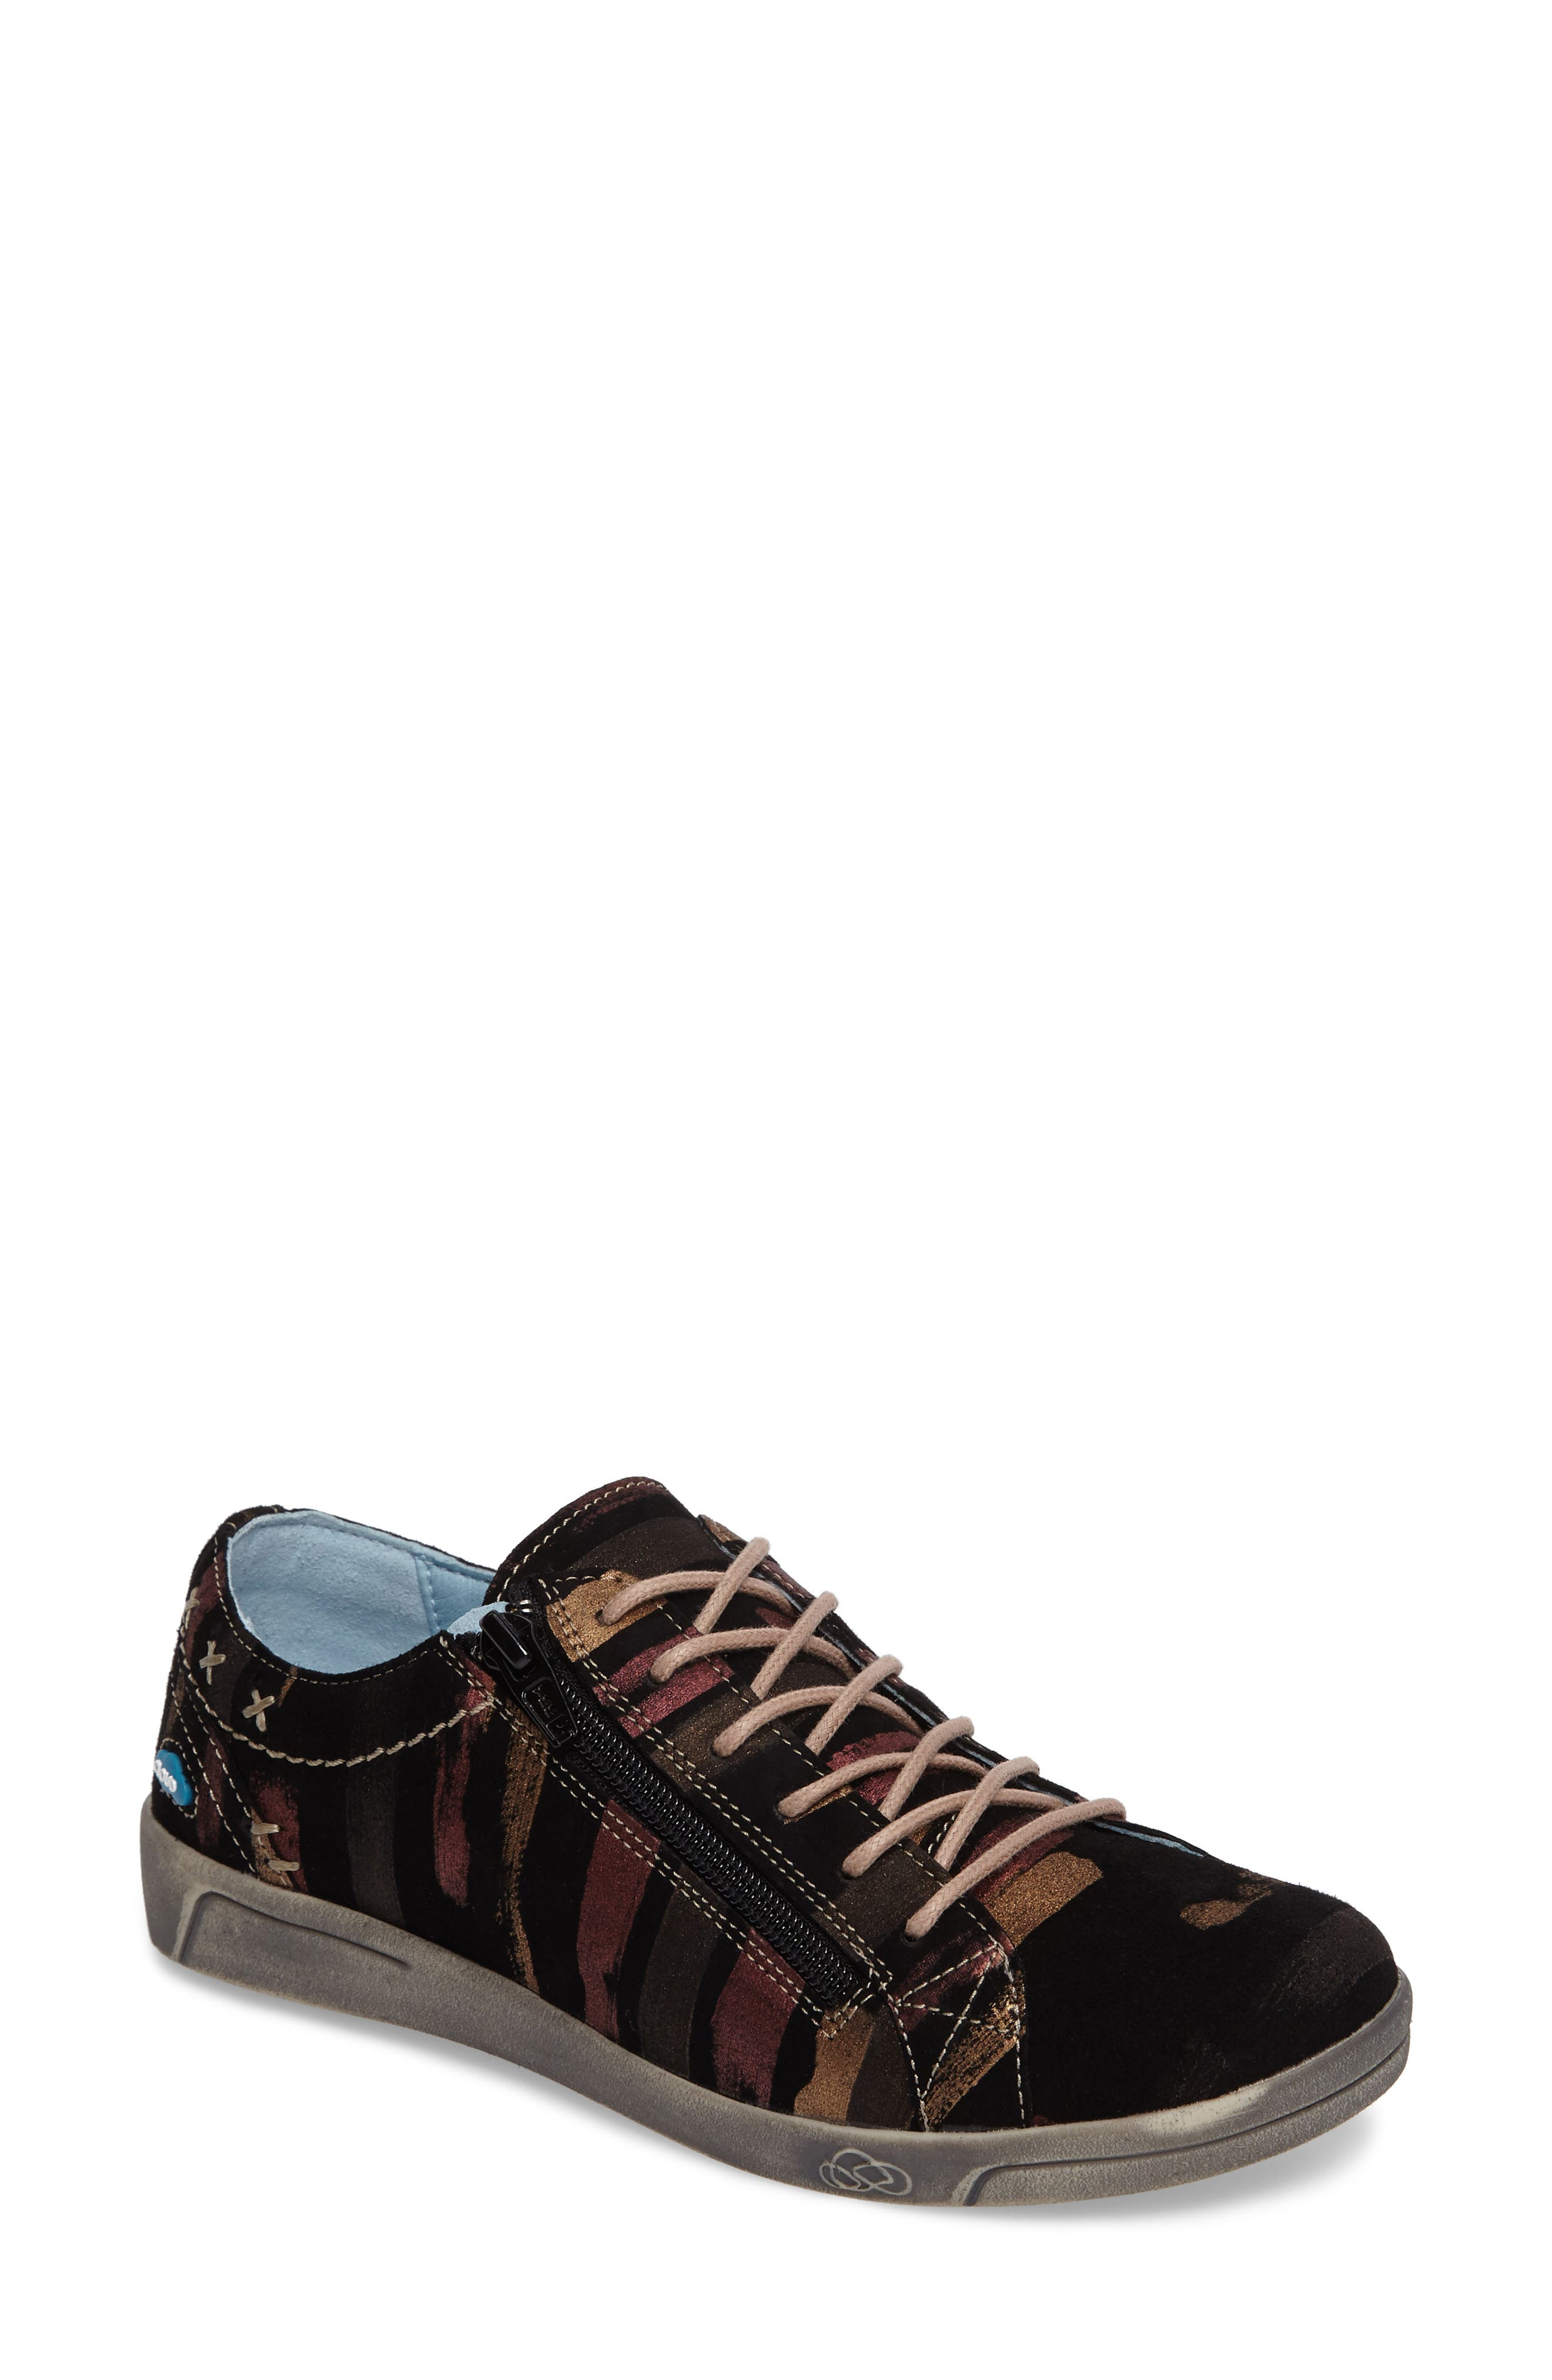 Aika Low Top Sneaker,                             Main thumbnail 1, color,                             BLACK LEATHER